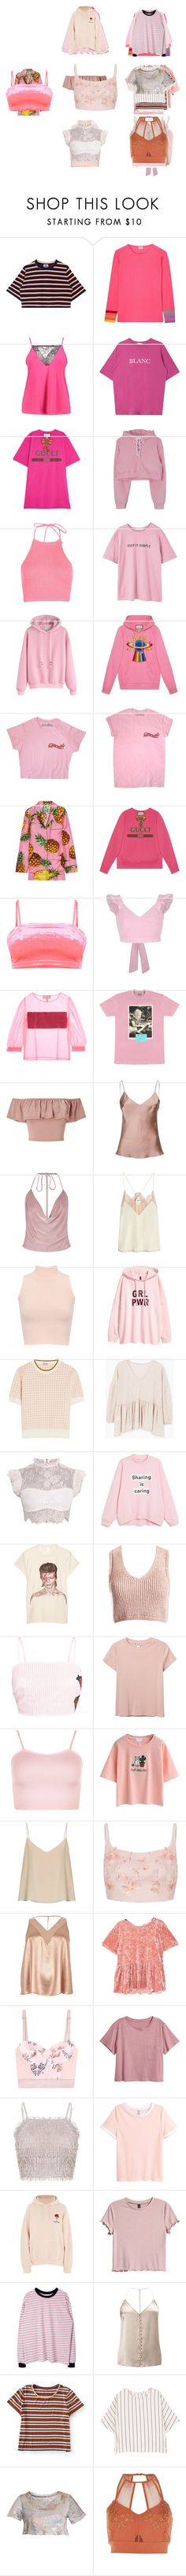 """""""Untitled #32"""" by harthkai on Polyvore featuring Orwell + Austen, Boohoo, Gucci, MANGO, Dolce&Gabbana, River Island, Paskal, Miss Selfridge, Gilda & Pearl and Zadig & Voltaire"""